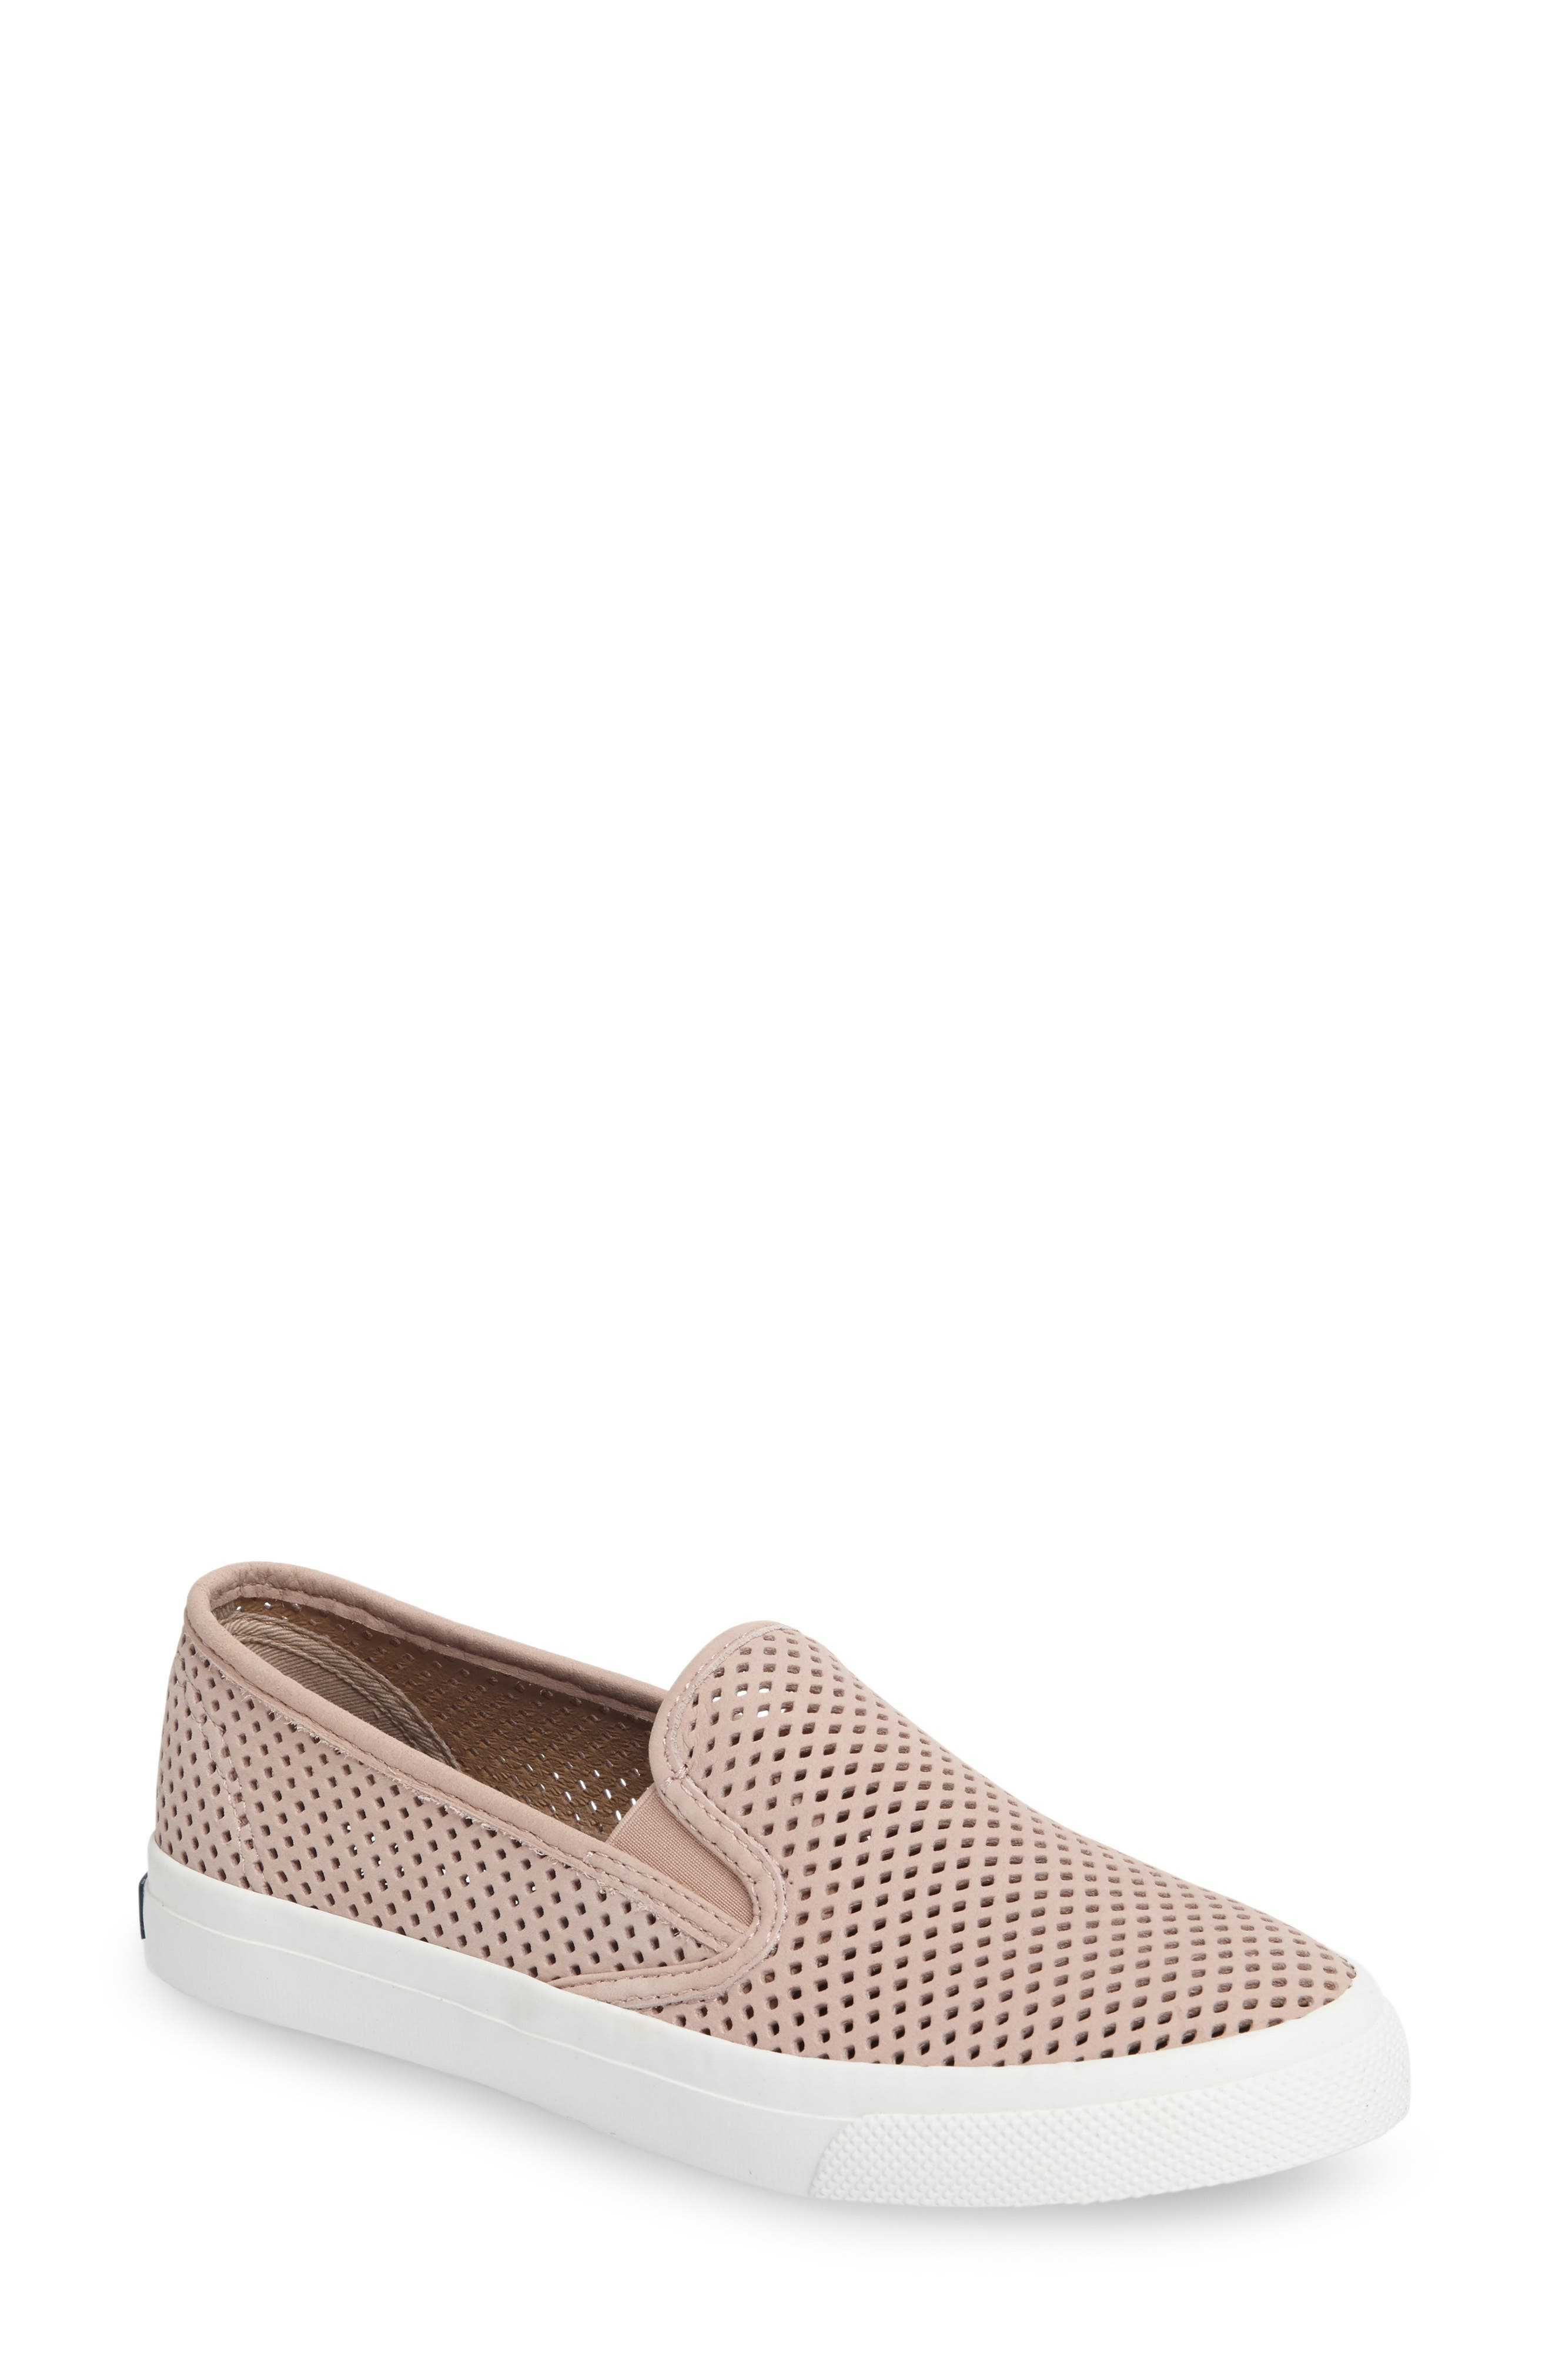 'Seaside' Perforated Slip-On Sneaker,                             Main thumbnail 10, color,